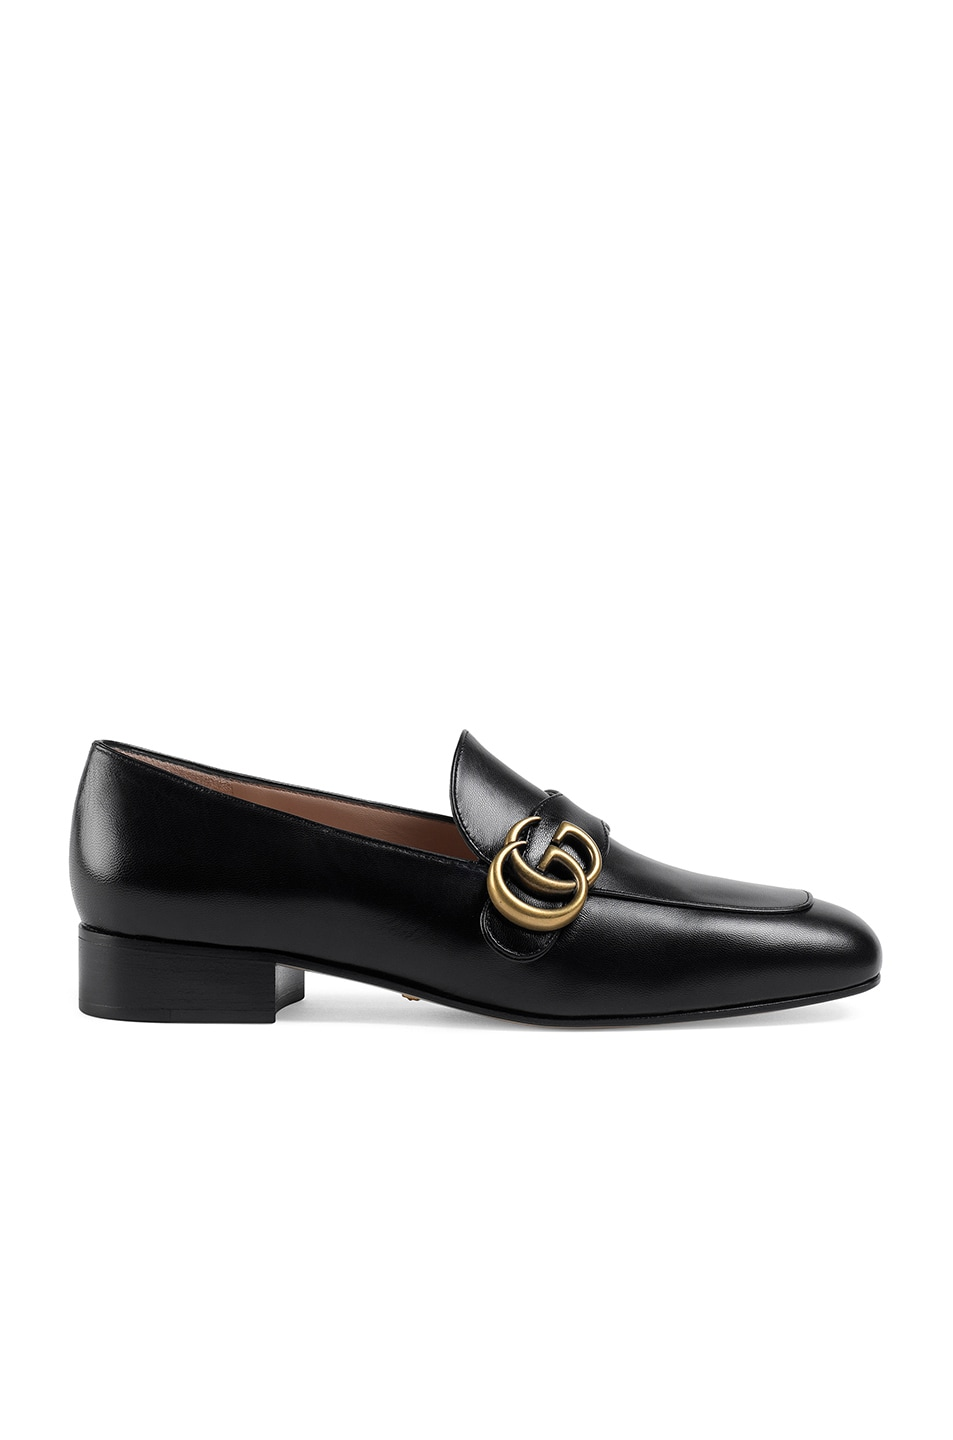 Image 1 of Gucci Double G Leather Loafers in Black